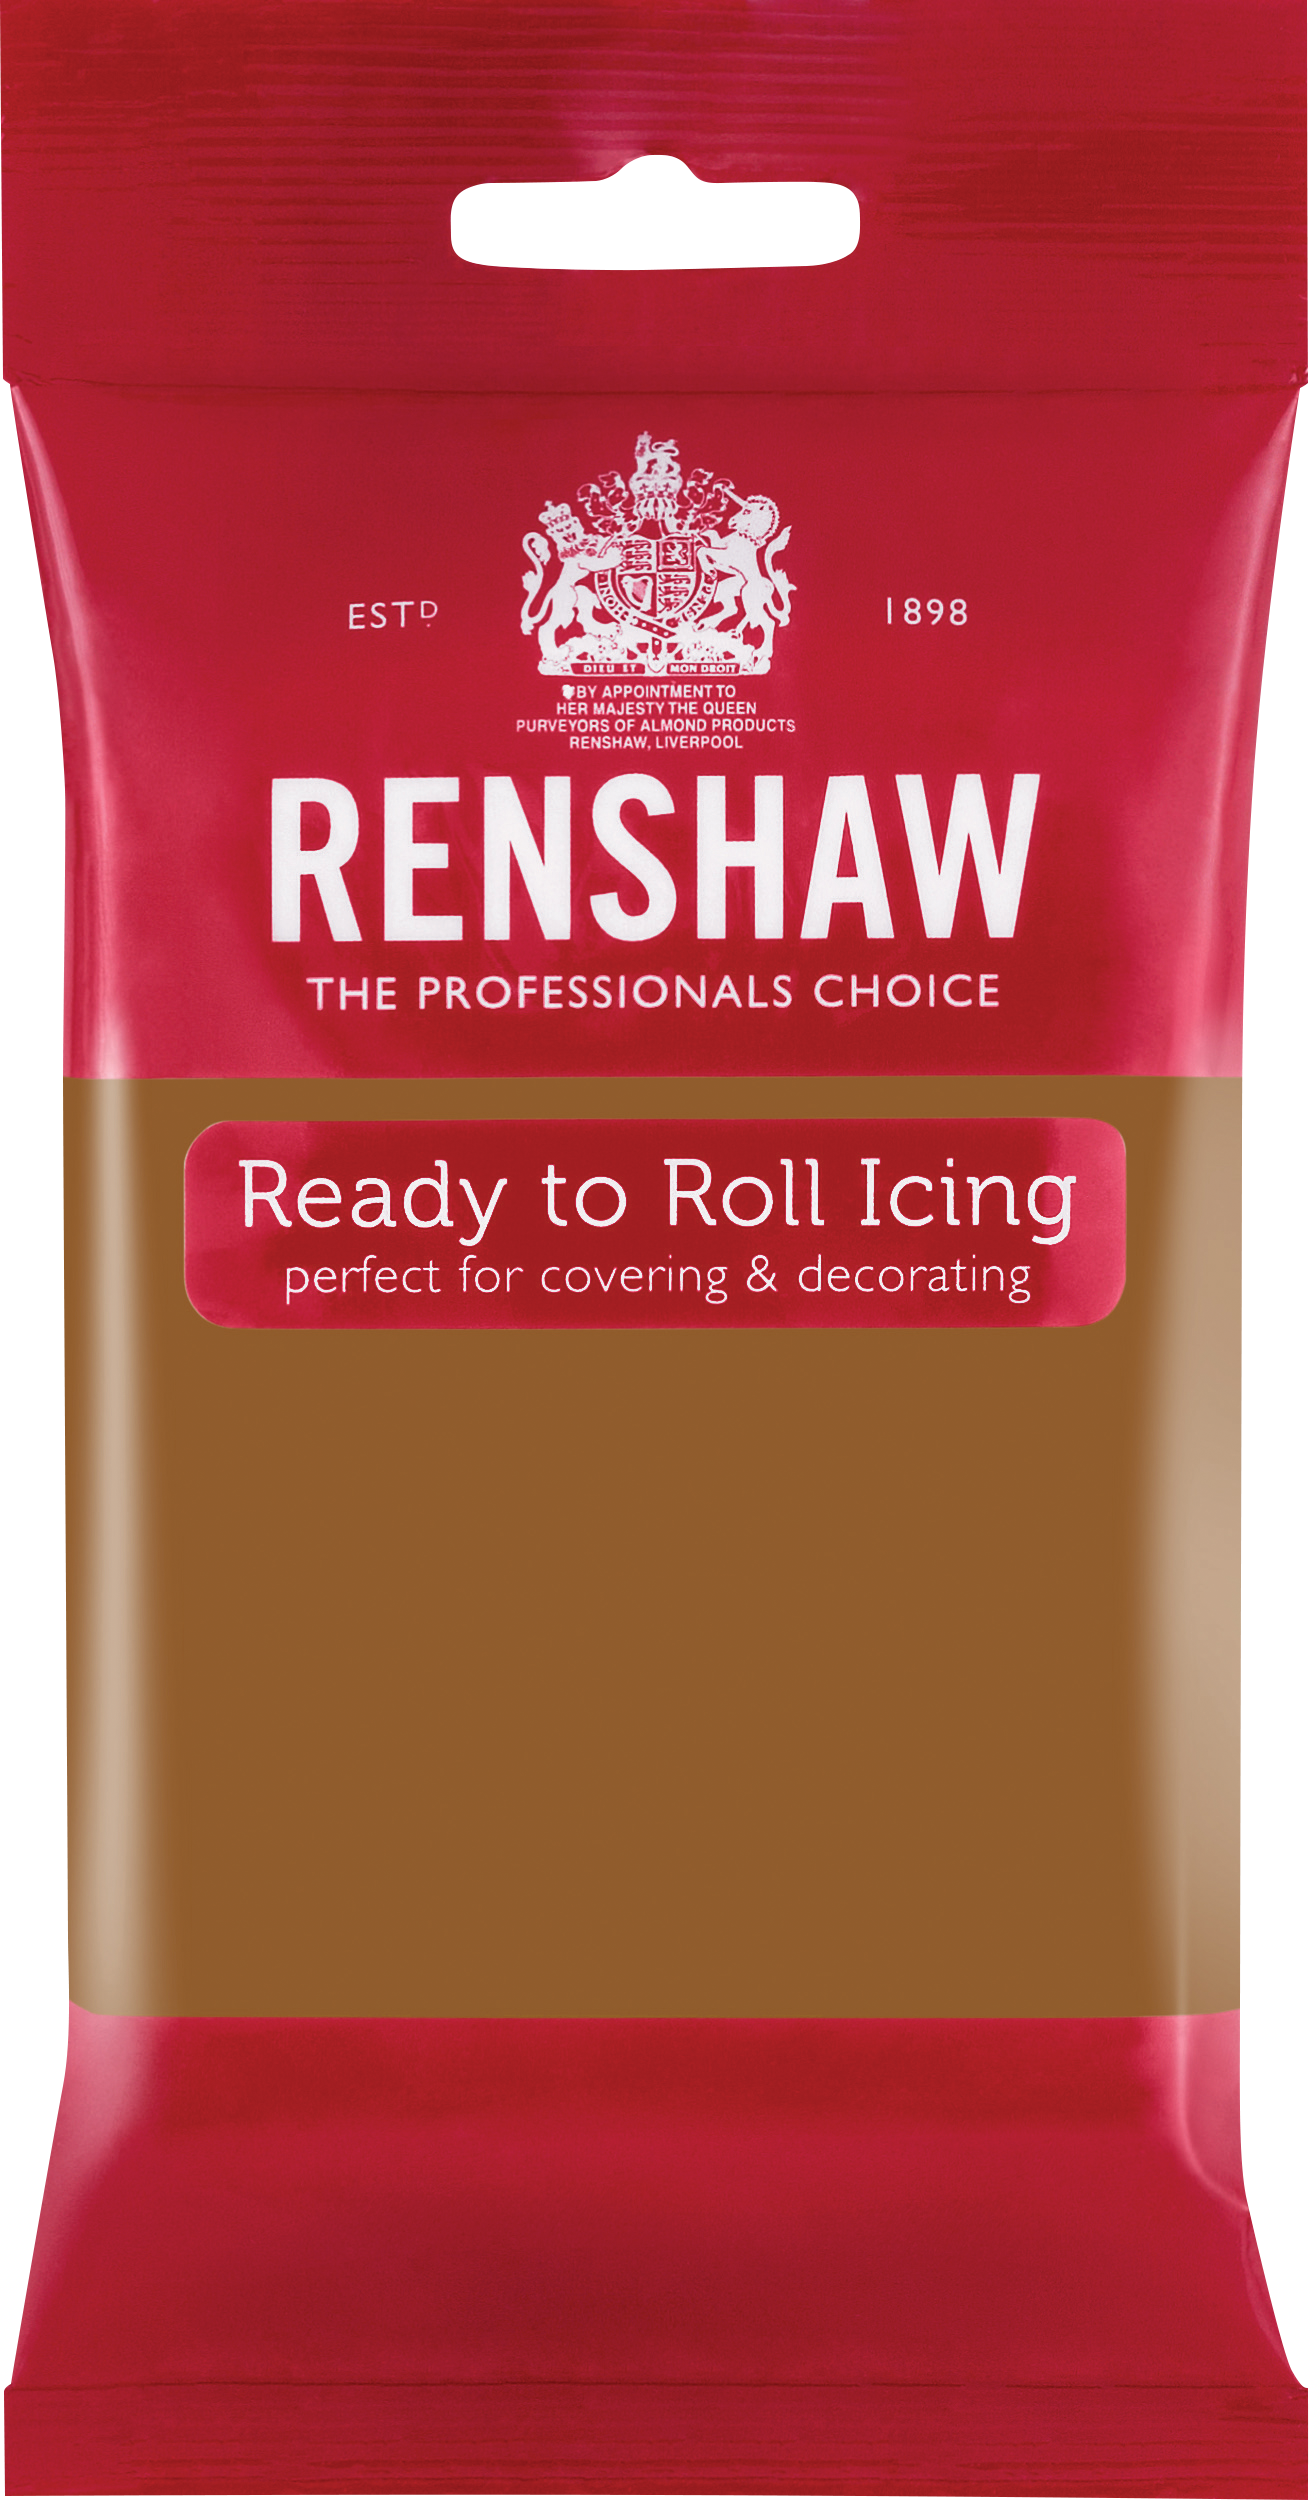 Cake Decorating Ready Made Icing : Renshaw Regalice 250g Ready Roll Icing Sugarpaste Fondant ...